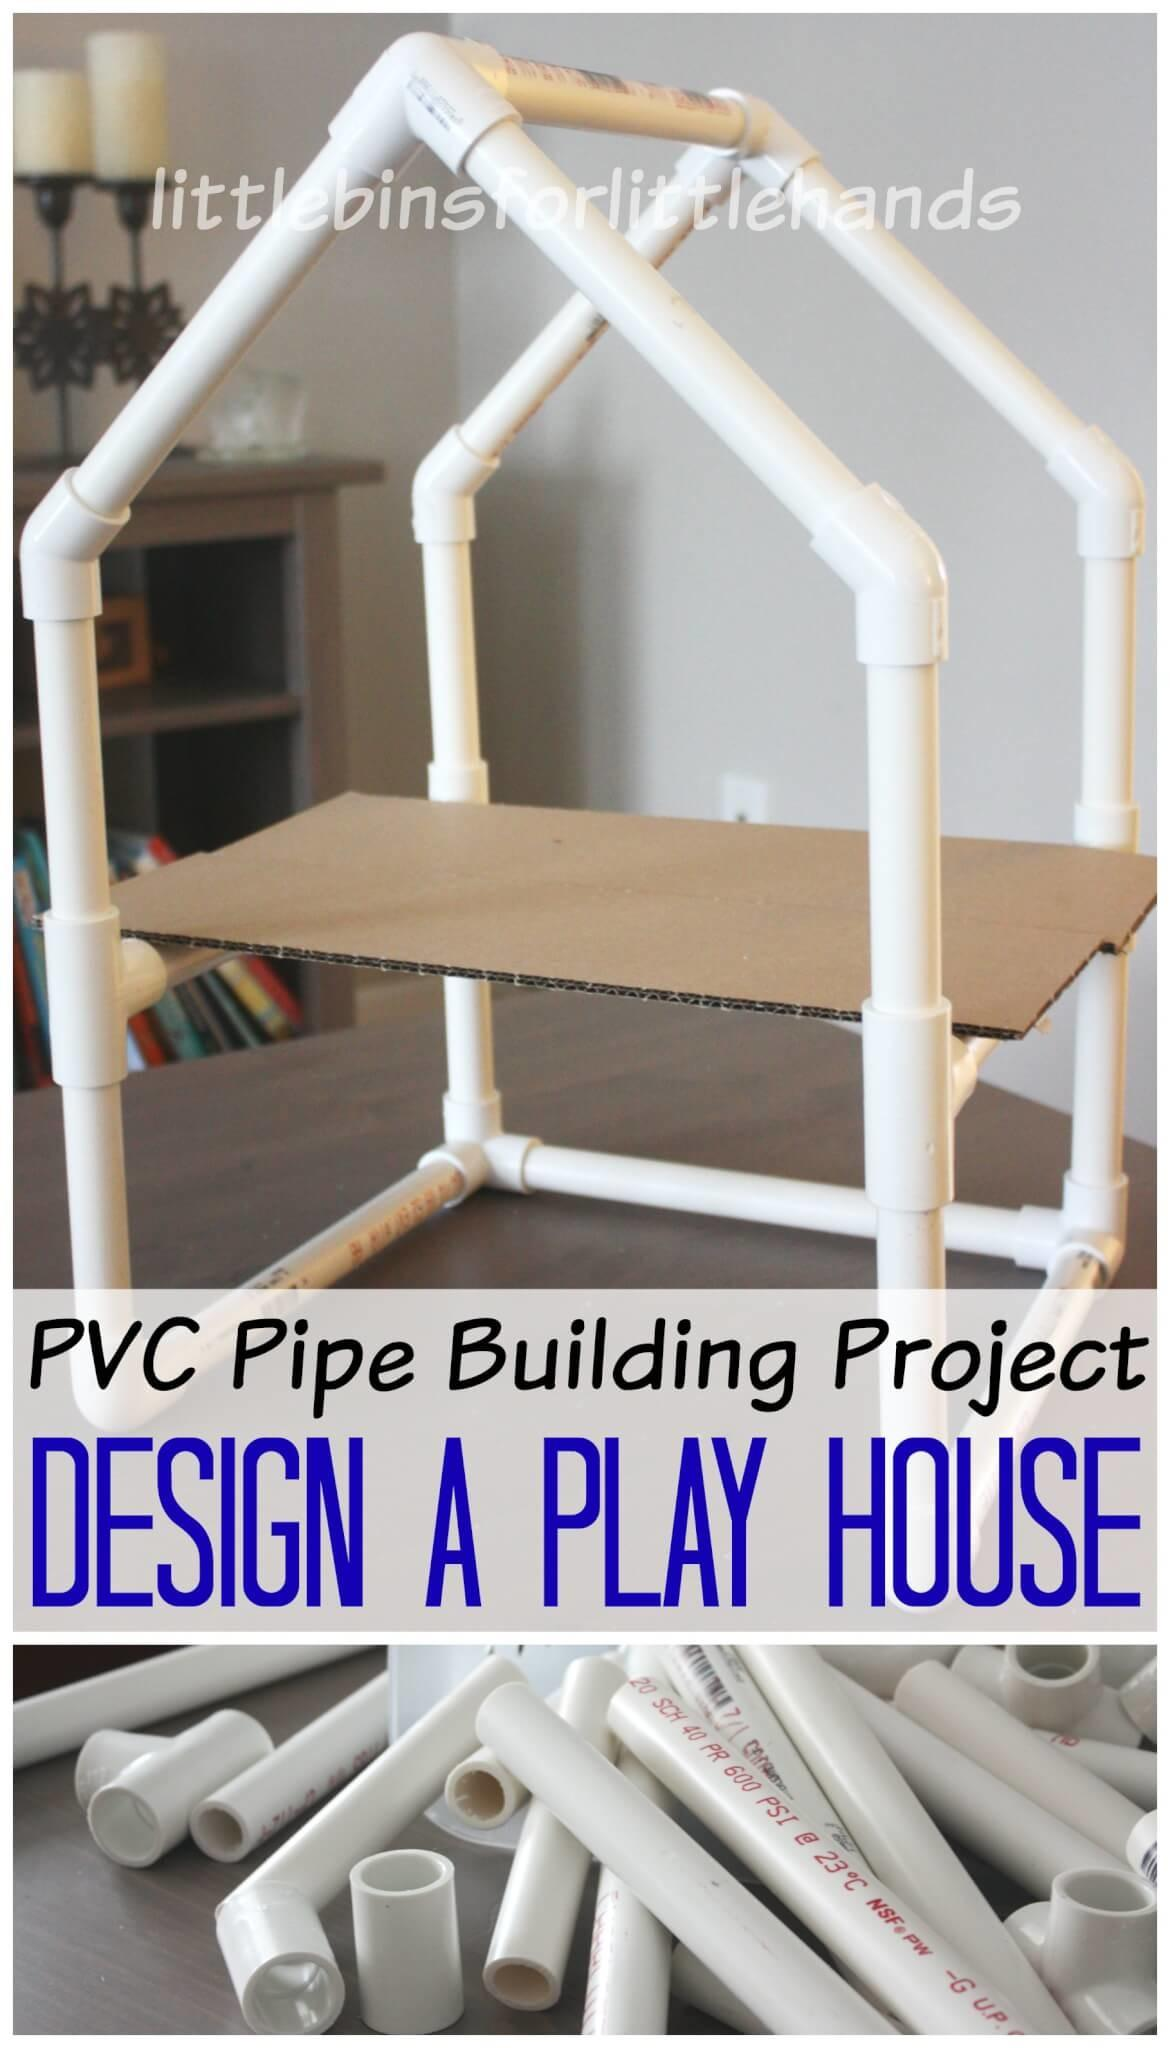 Just Coop Build Chicken Pvc Pipe Details